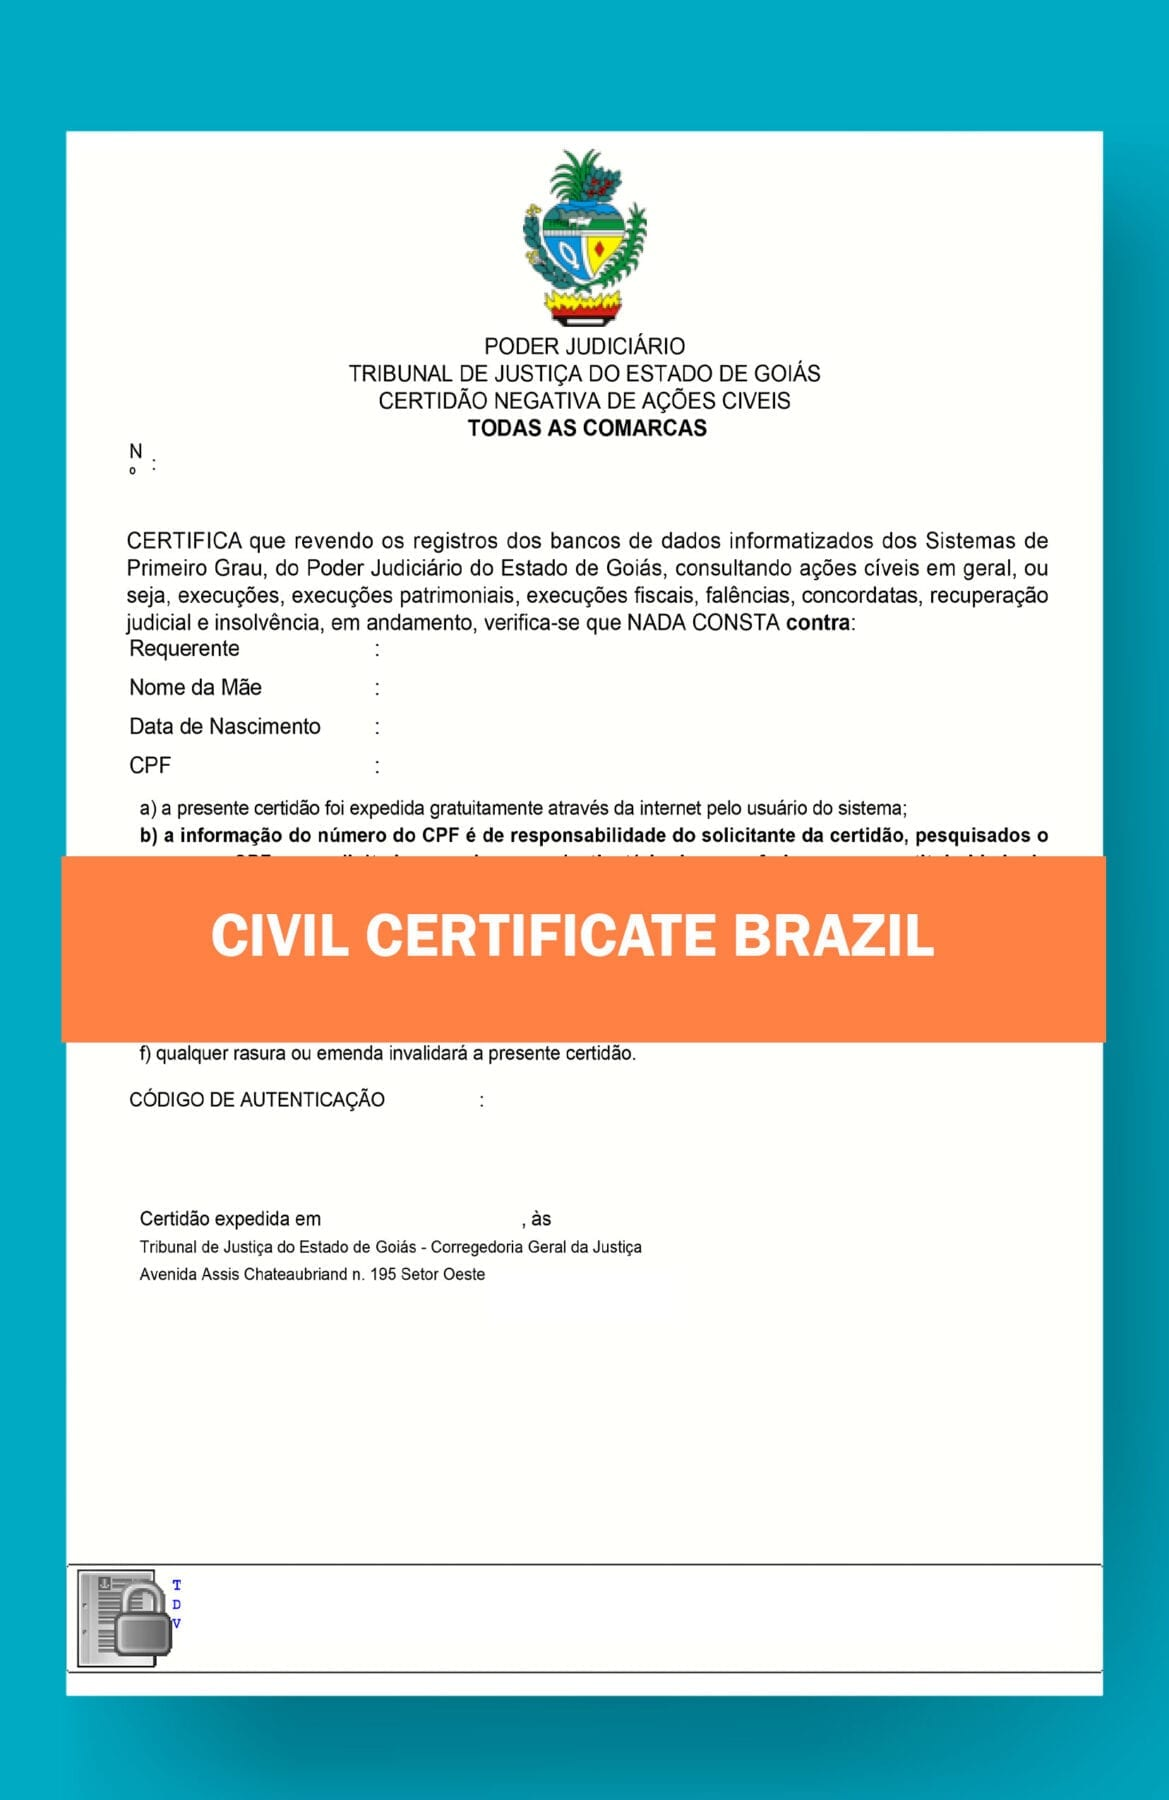 CIVIL-CERTIFICATE-TEMPLATE_BRAZIL